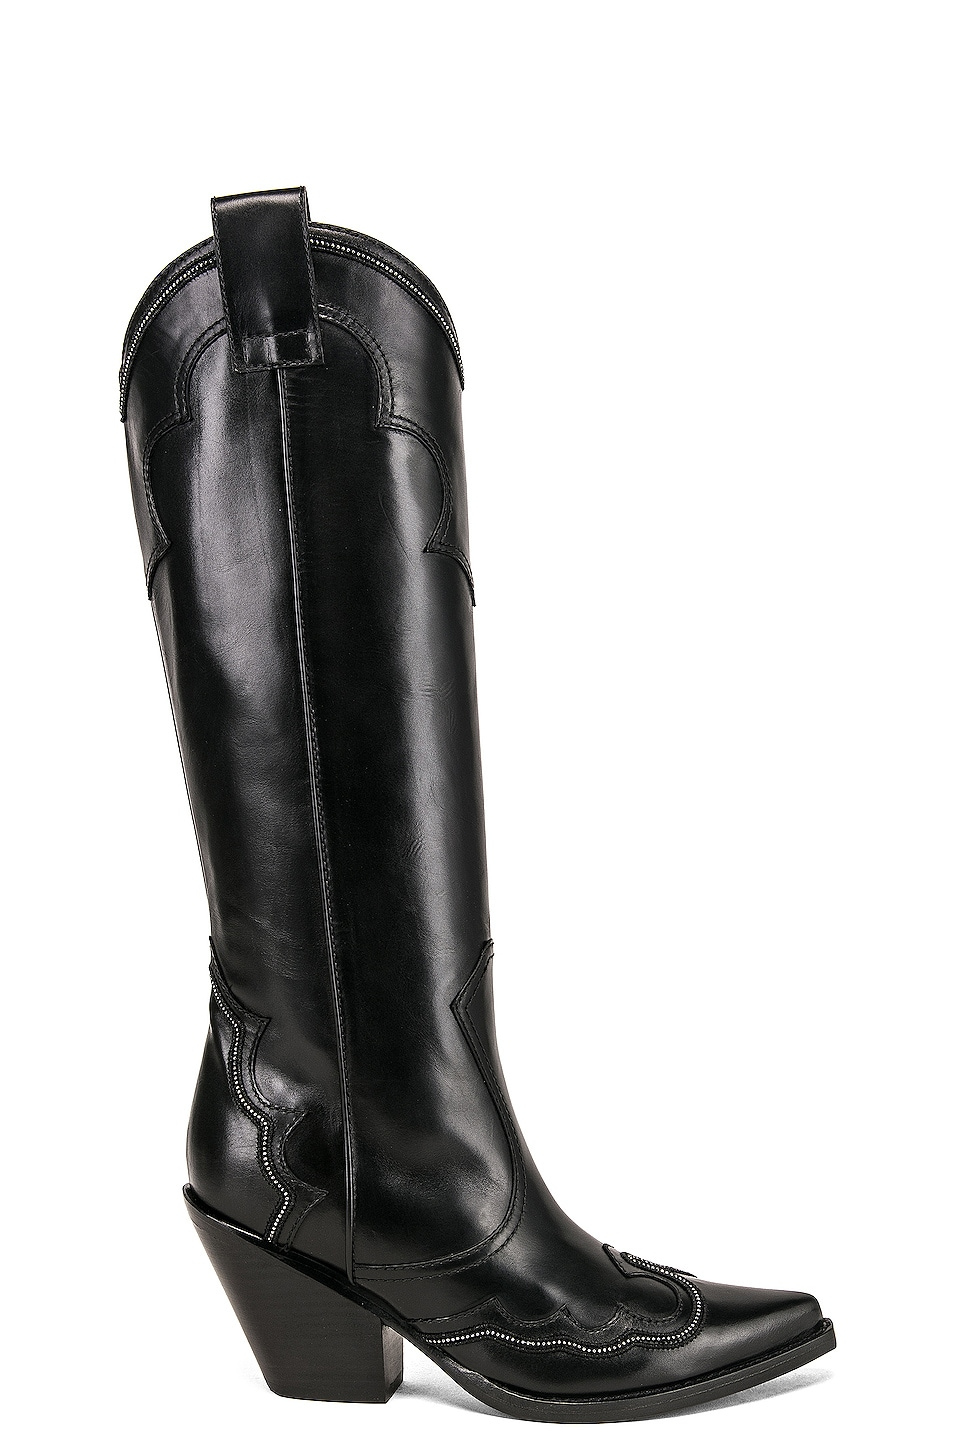 Image 1 of Redemption Cowboy Boot in Black